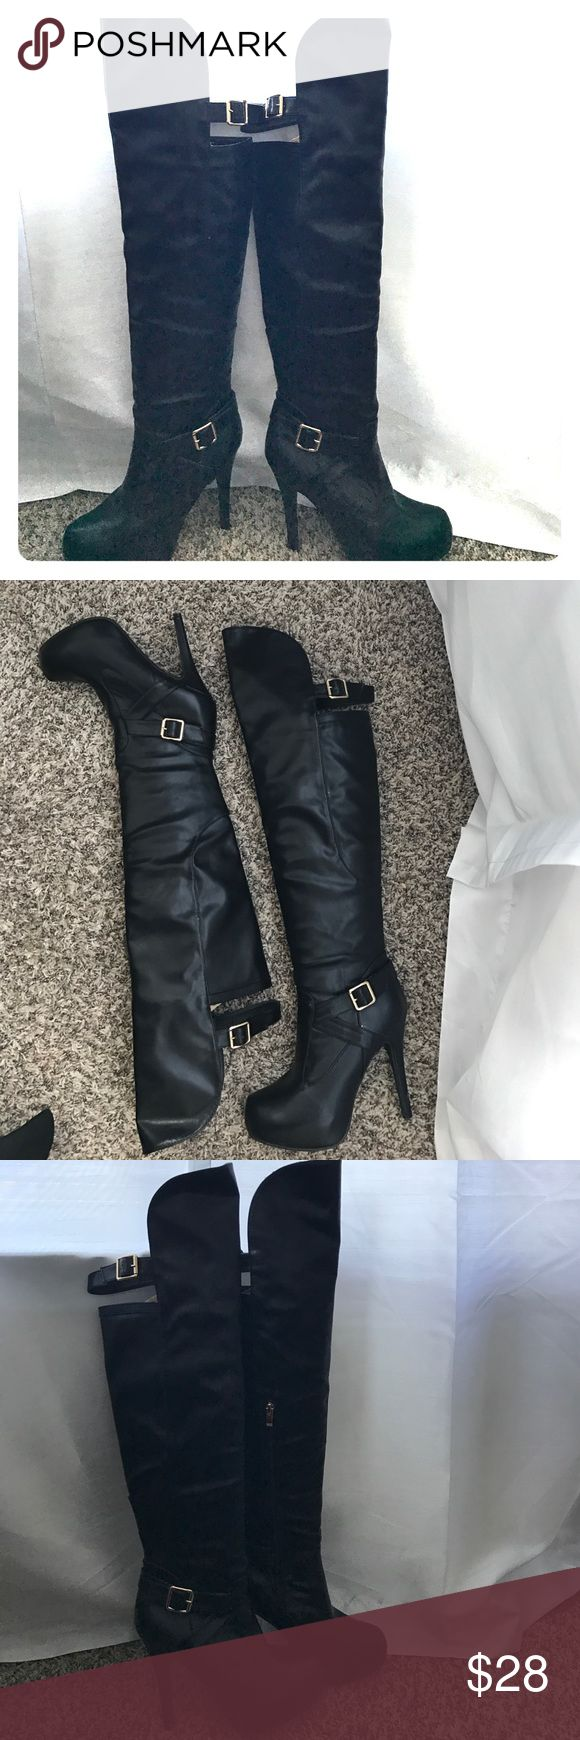 Wild Diva Knee High Boots SALE $28 Black Wild Diva Knee High Boots with Gold Hardware....Gently Used 7.5 SALE $28 Wild Diva Shoes Over the Knee Boots